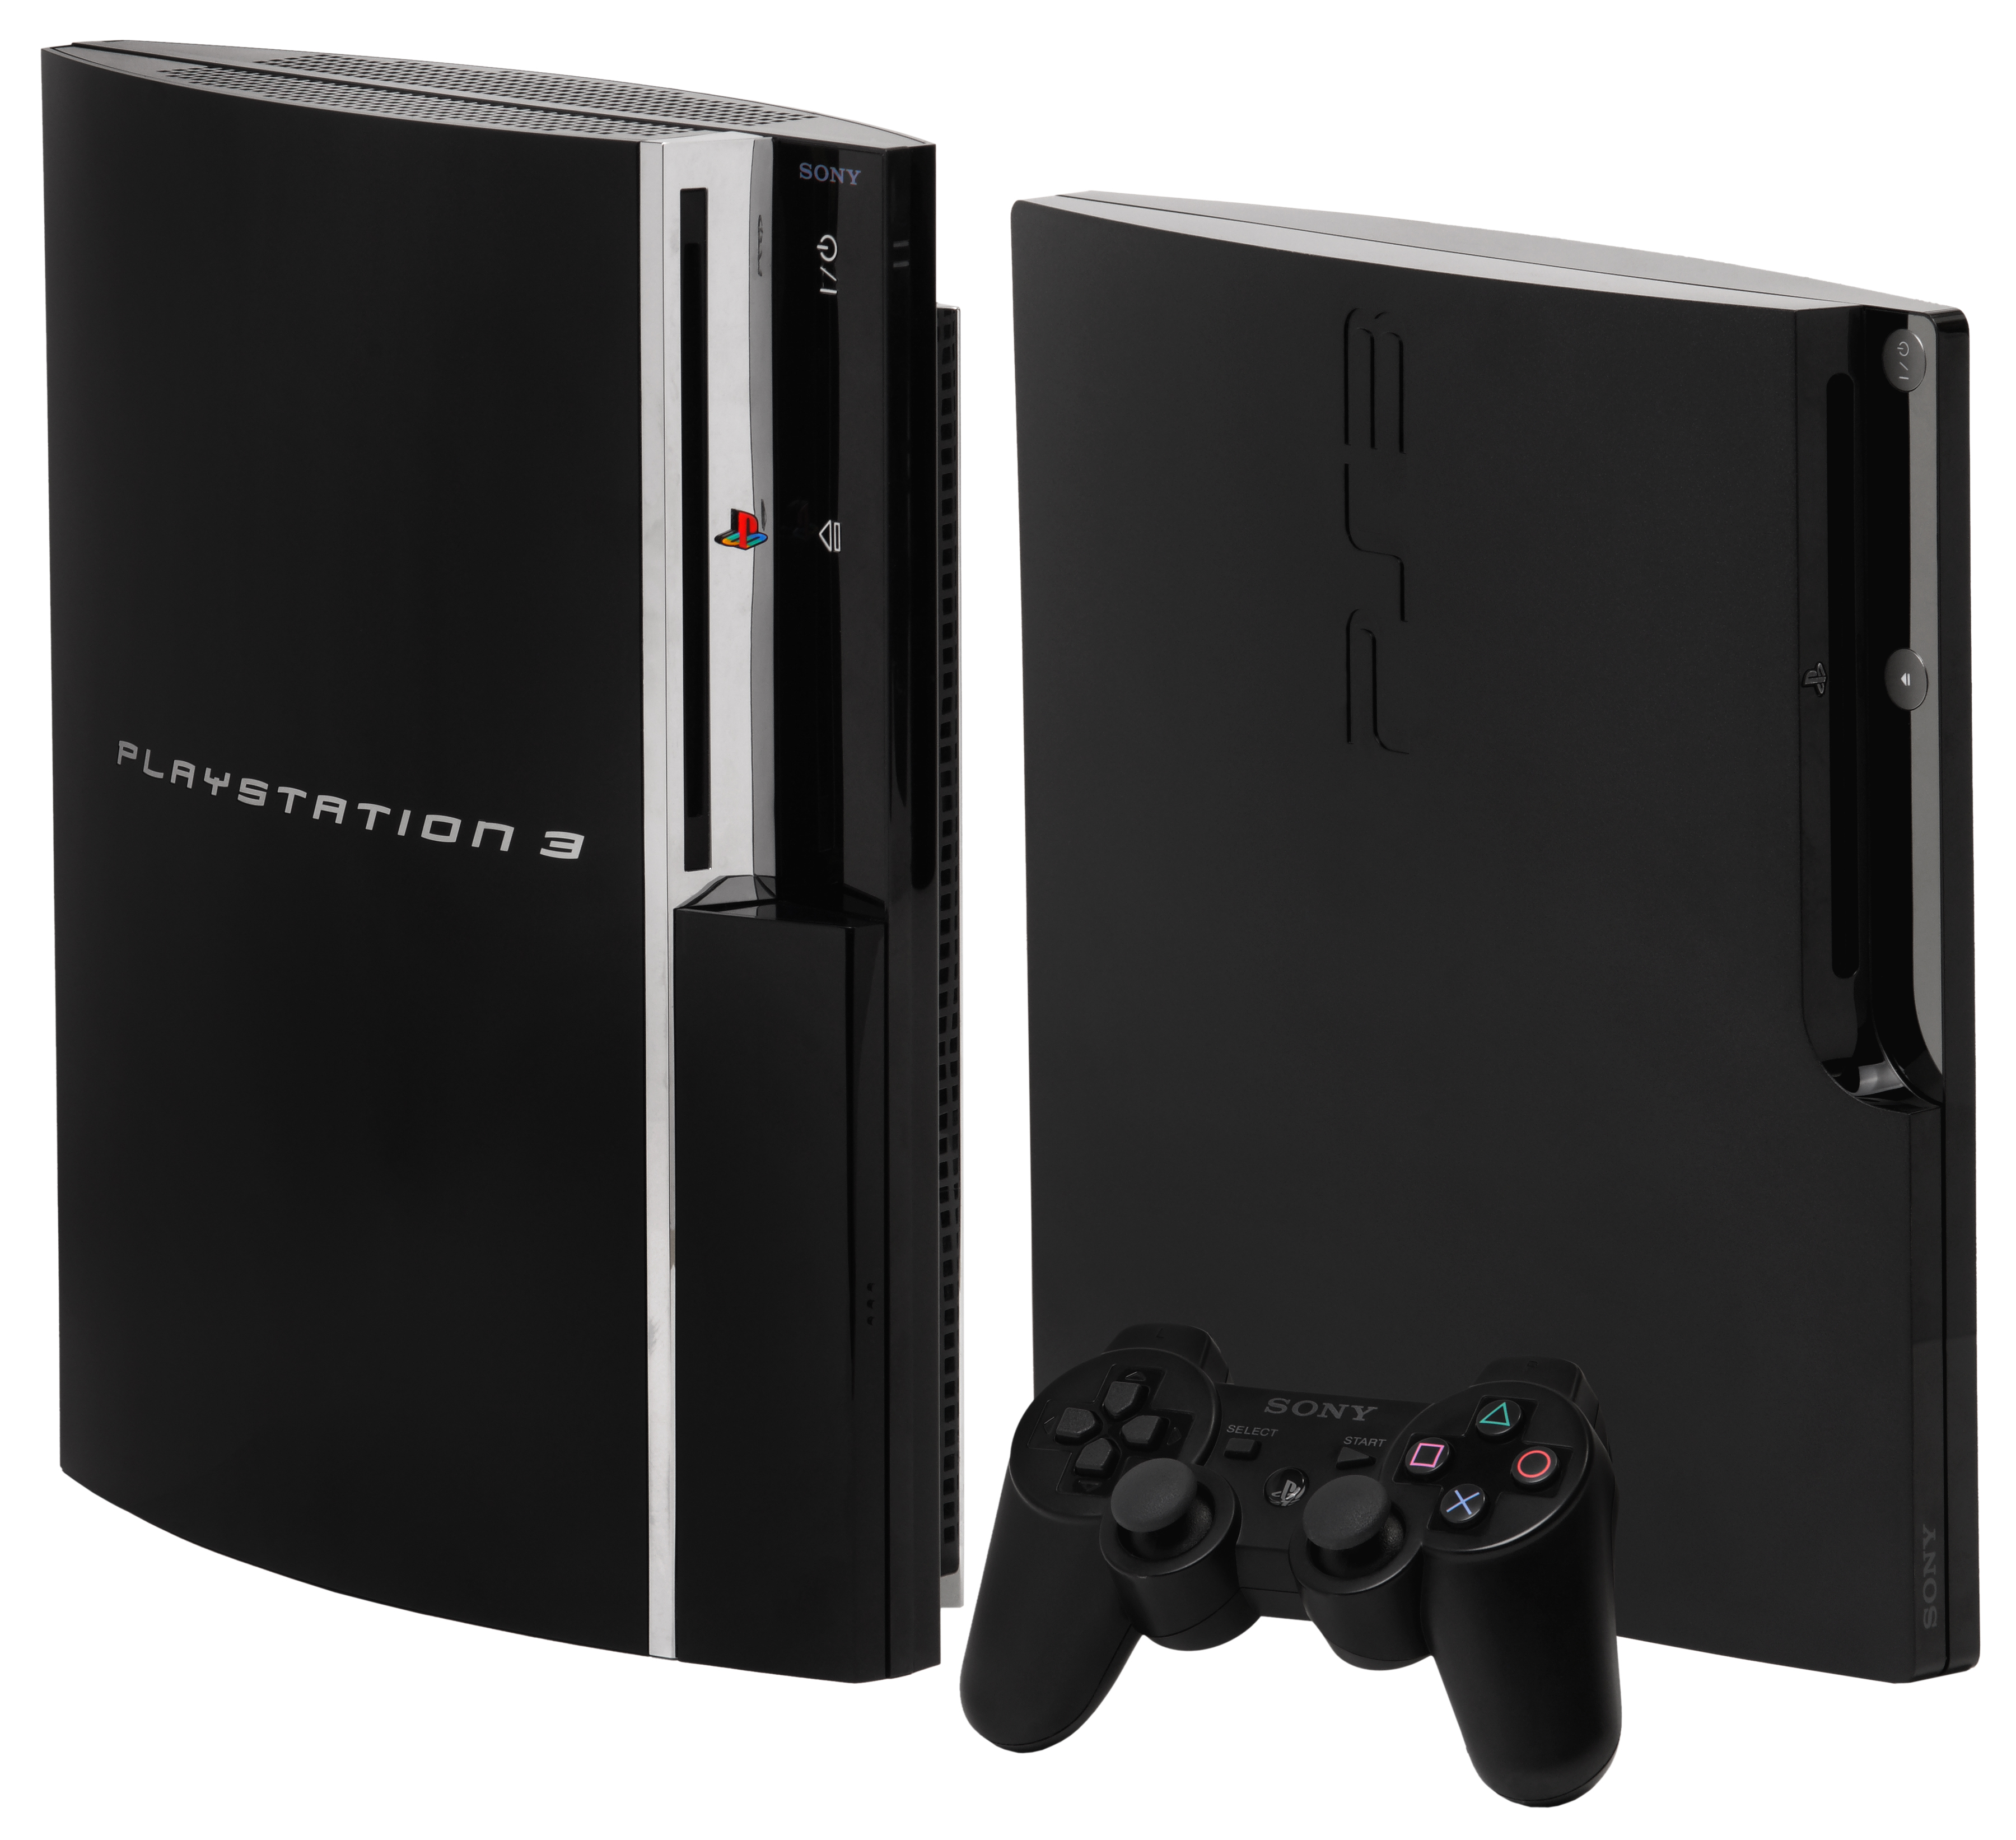 Description PS3-Consoles-Set.jpg